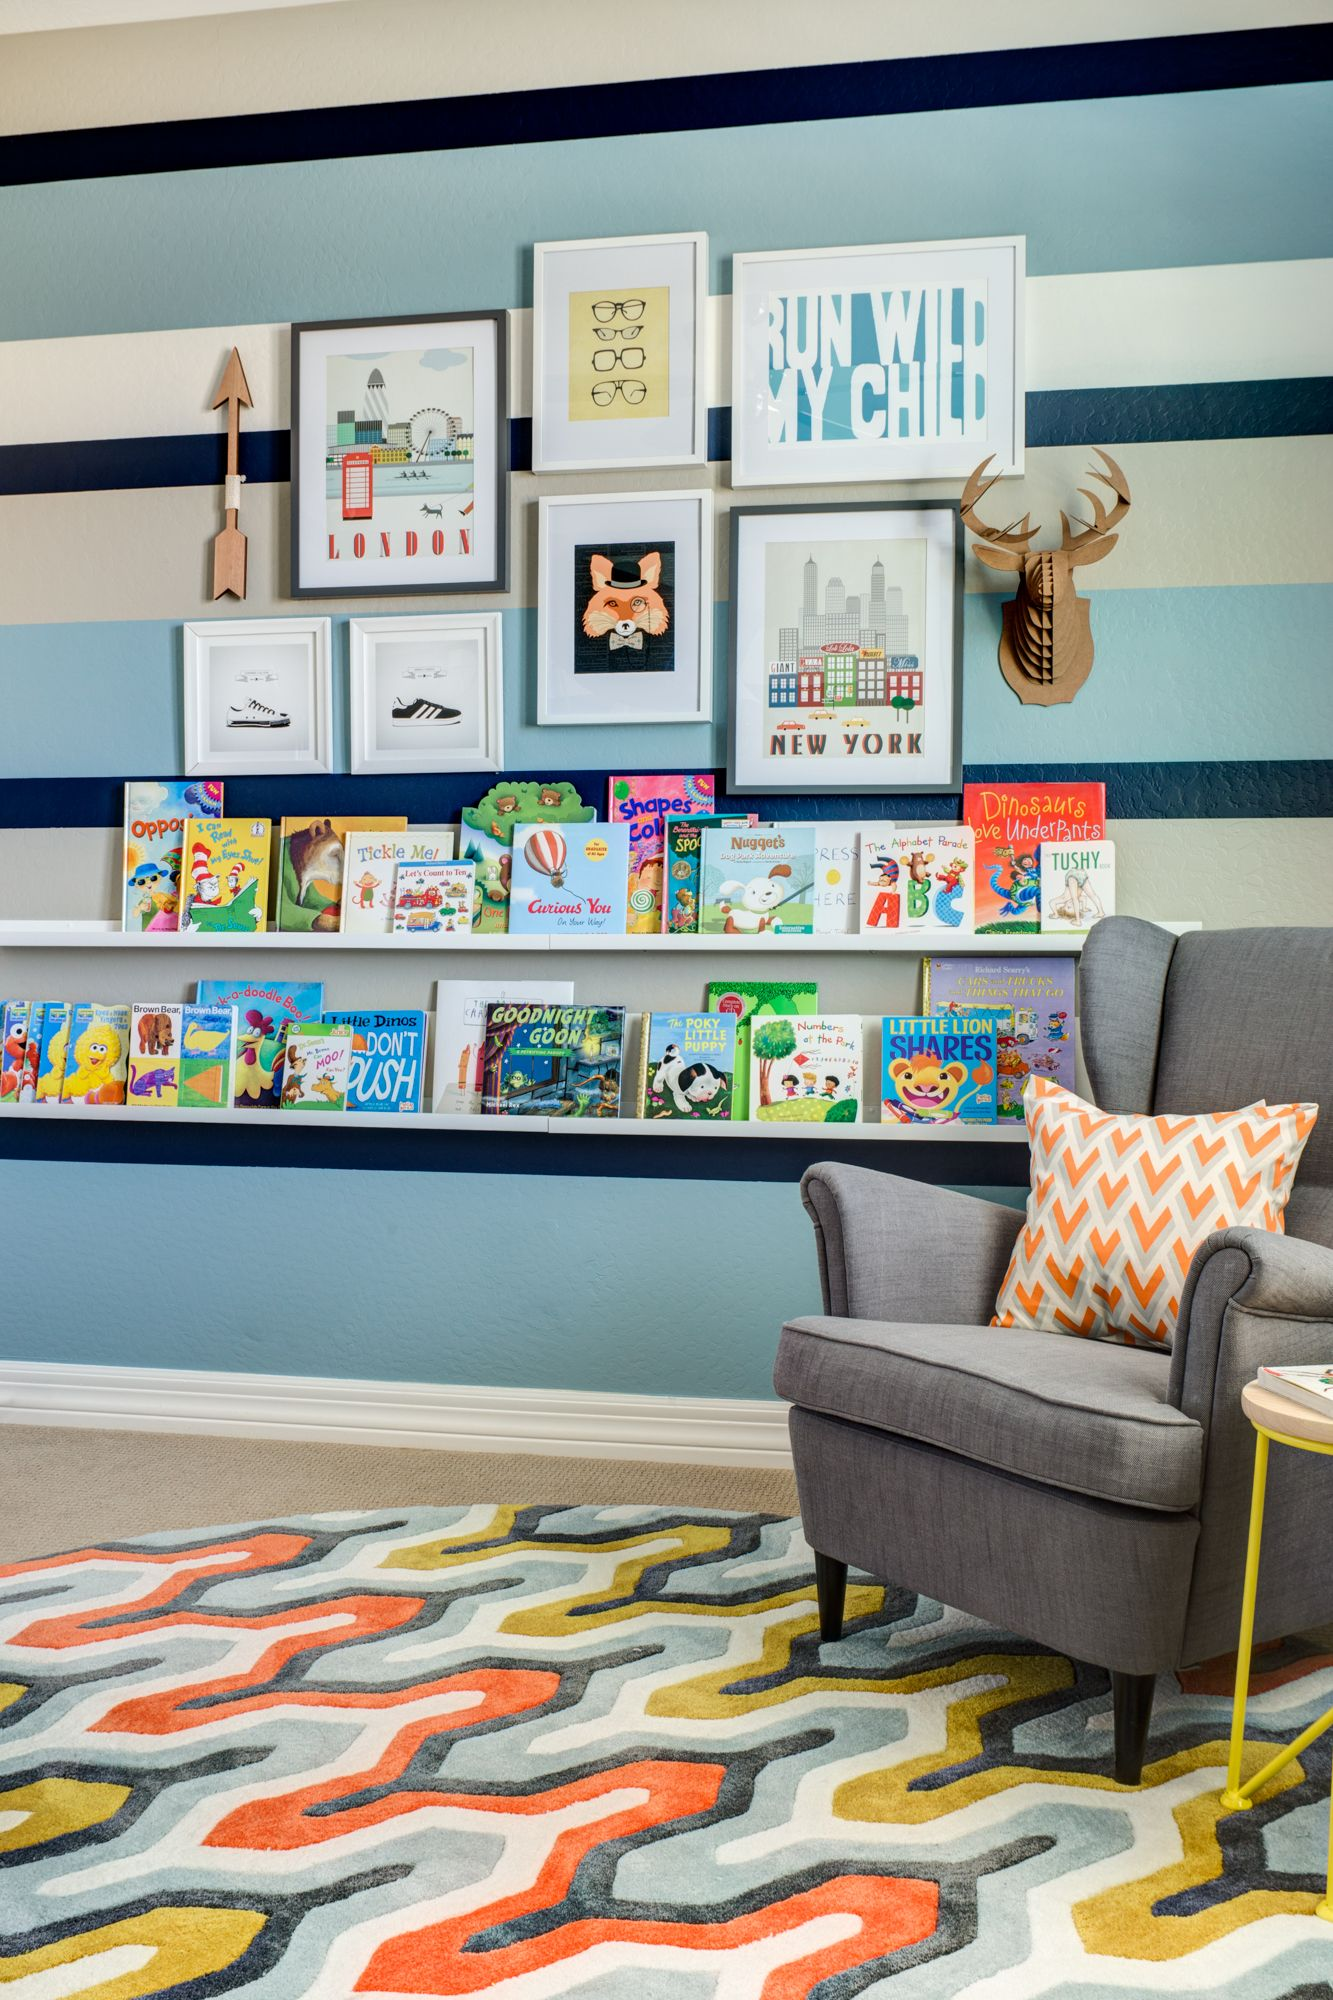 This deconstructed chevron rug adds so much color to this fab kids room! #bigboyroom